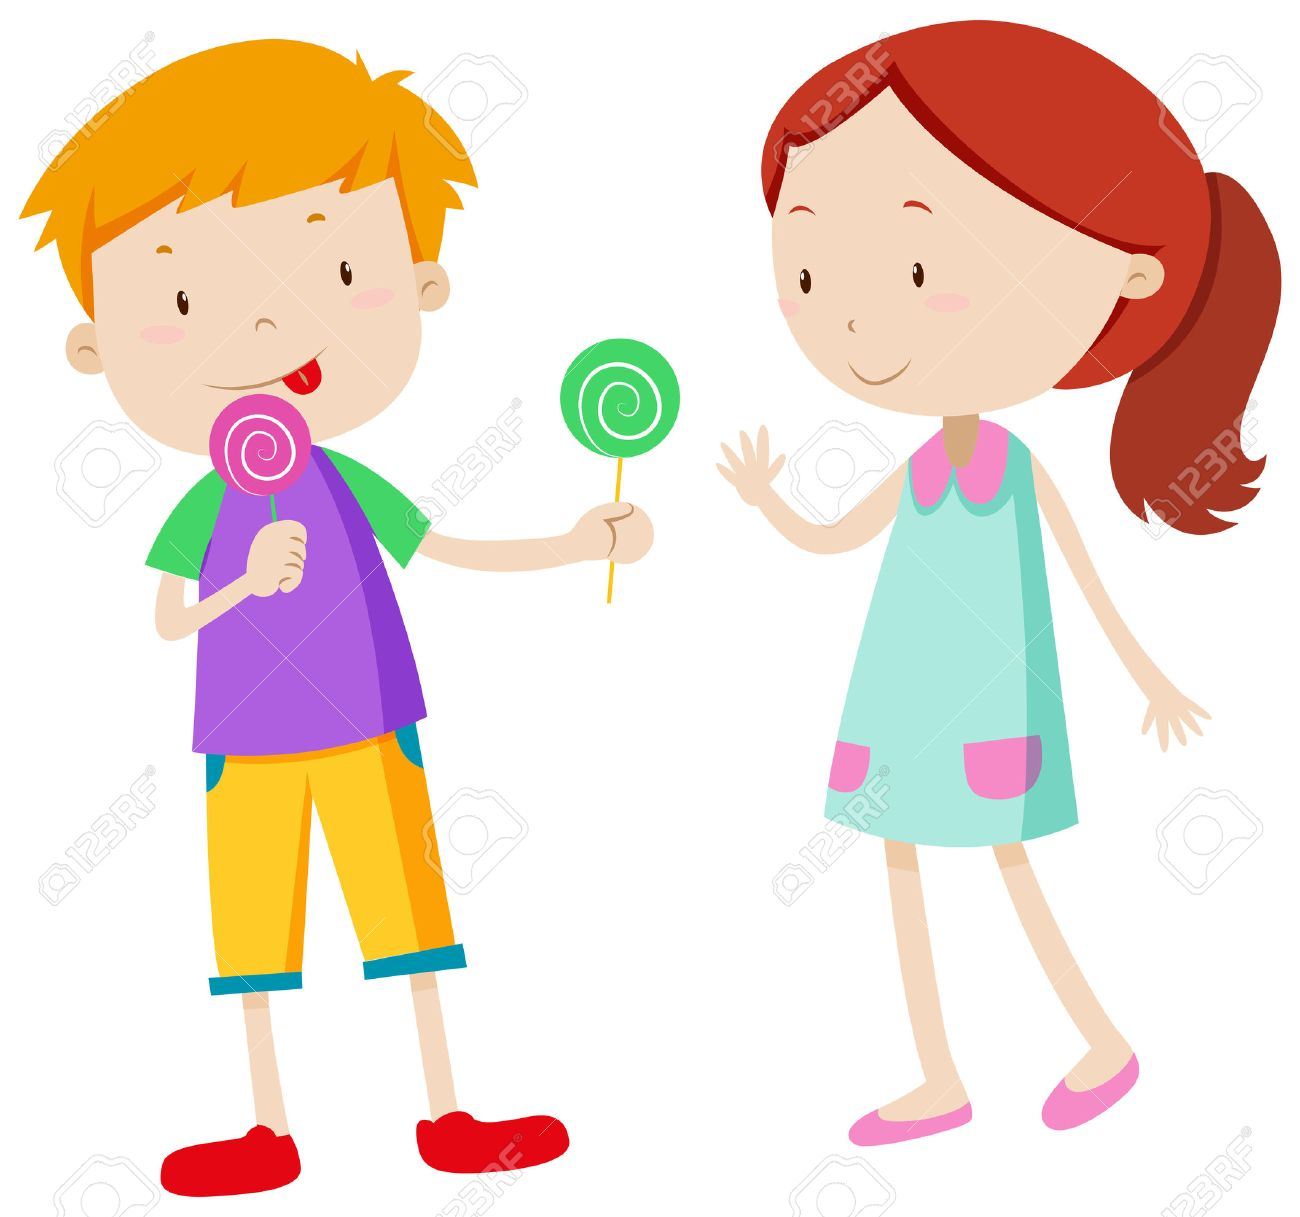 boy sharing candy with the girl illustration royalty free cliparts rh 123rf com sharing clip art images not sharing clip art